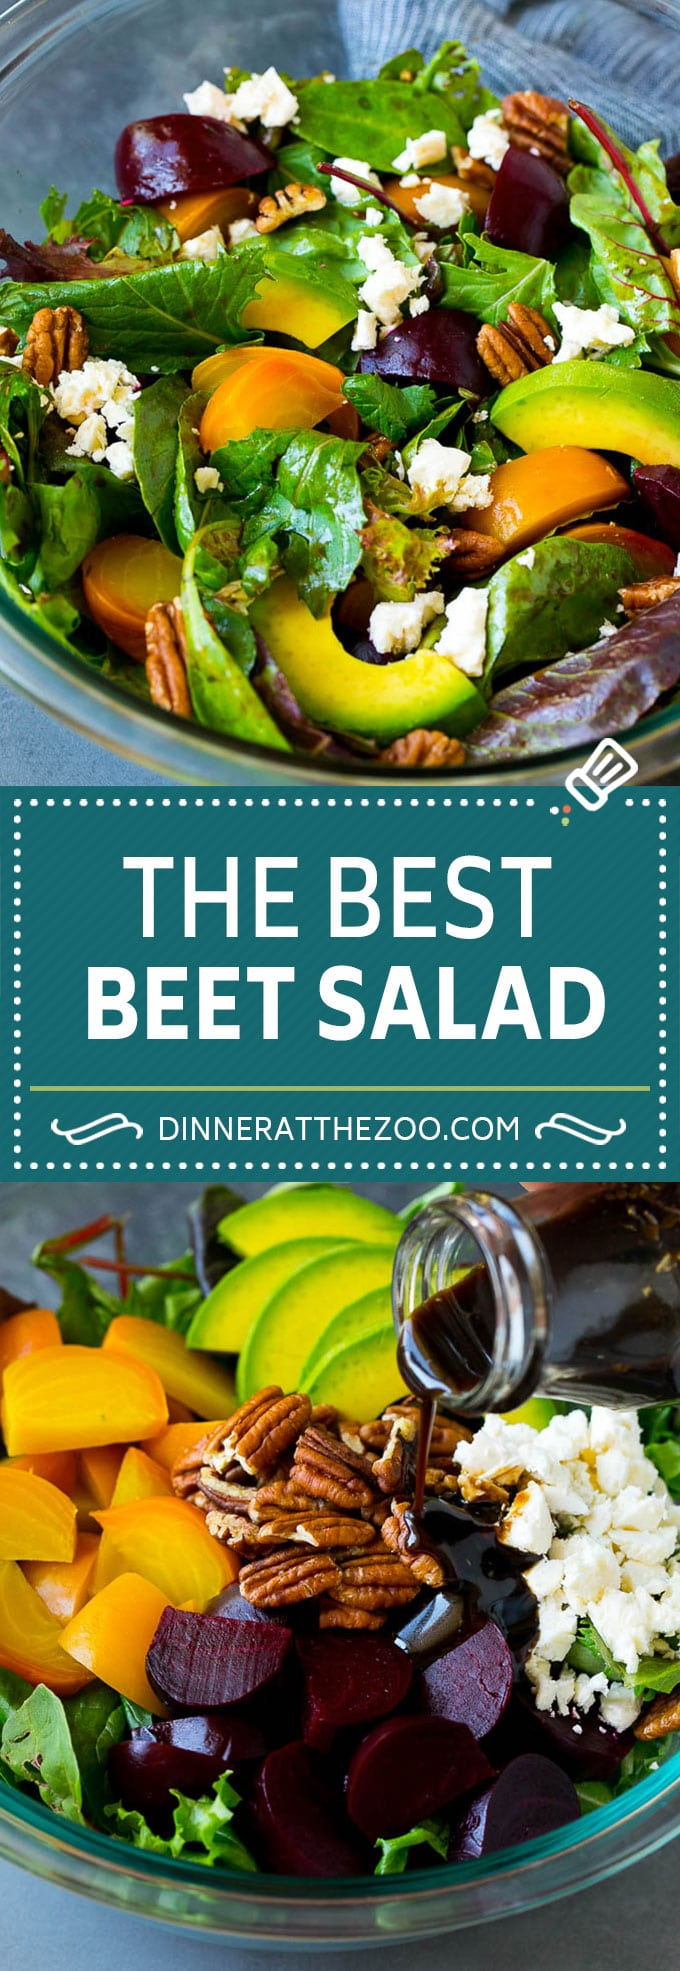 Beet Salad Recipe #beets #avocado #feta #salad #dinner #dinneratthezoo